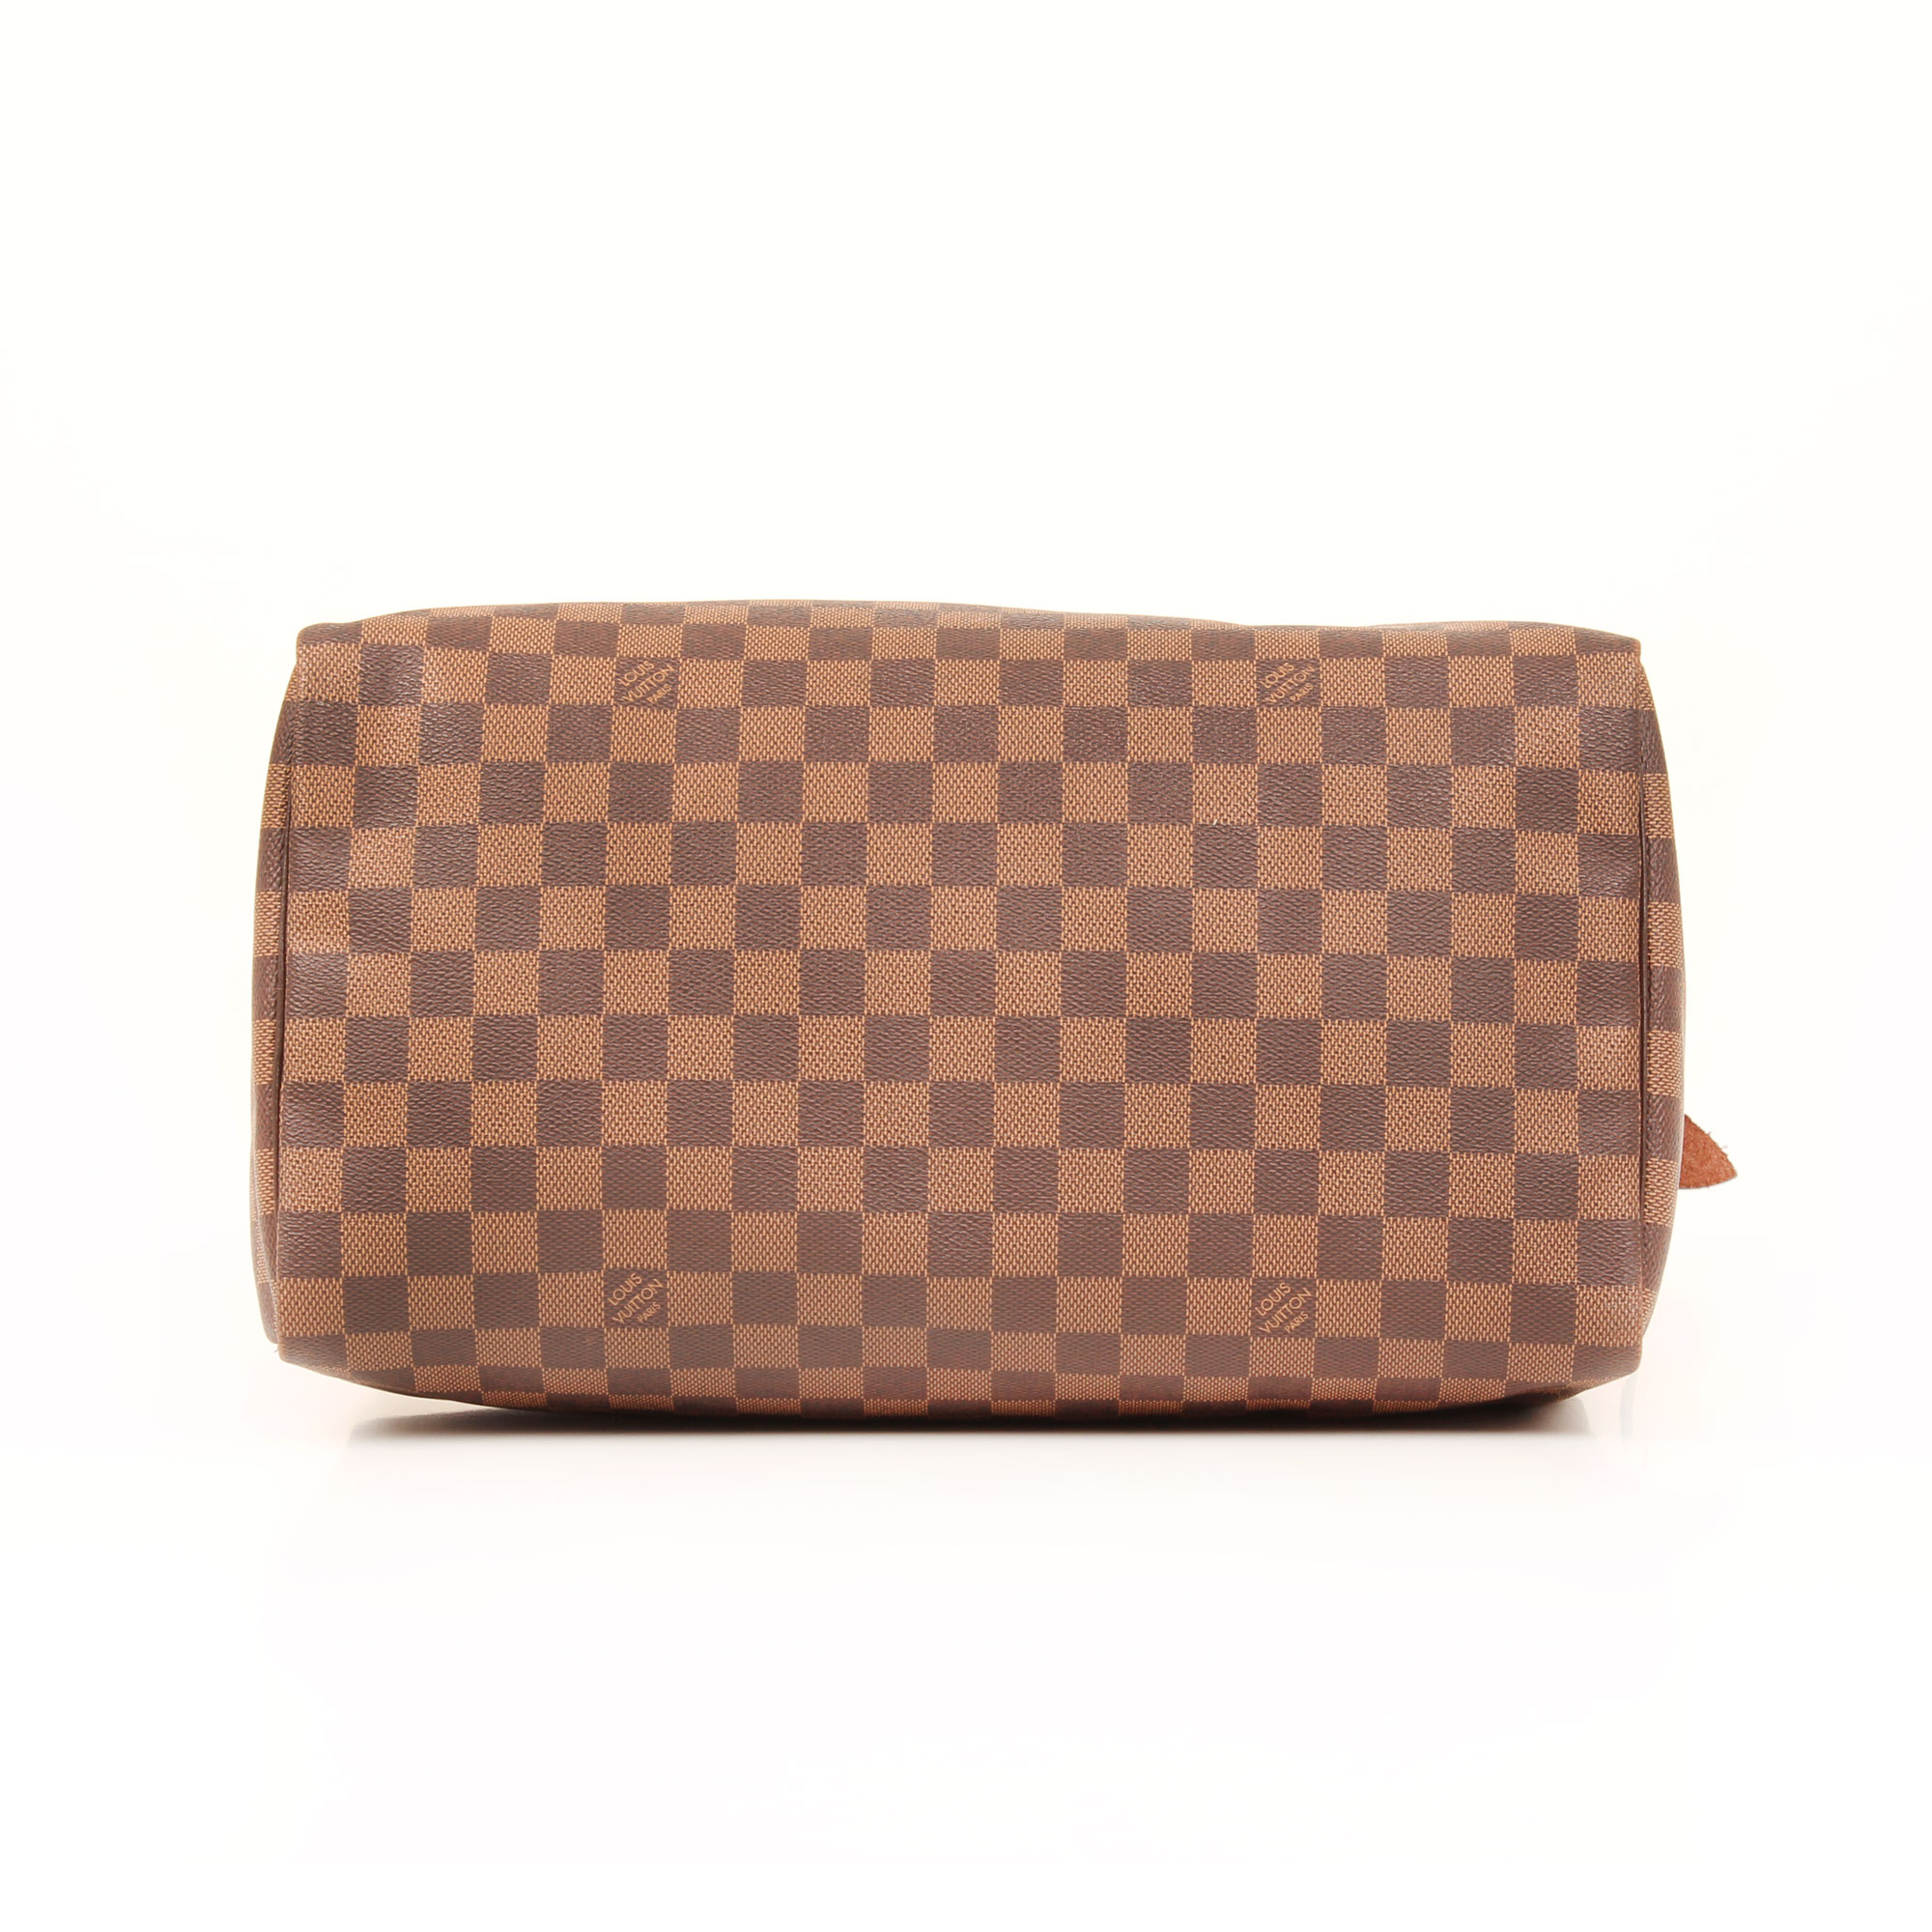 louis-vuitton-speedy-35-damier-ebene-base